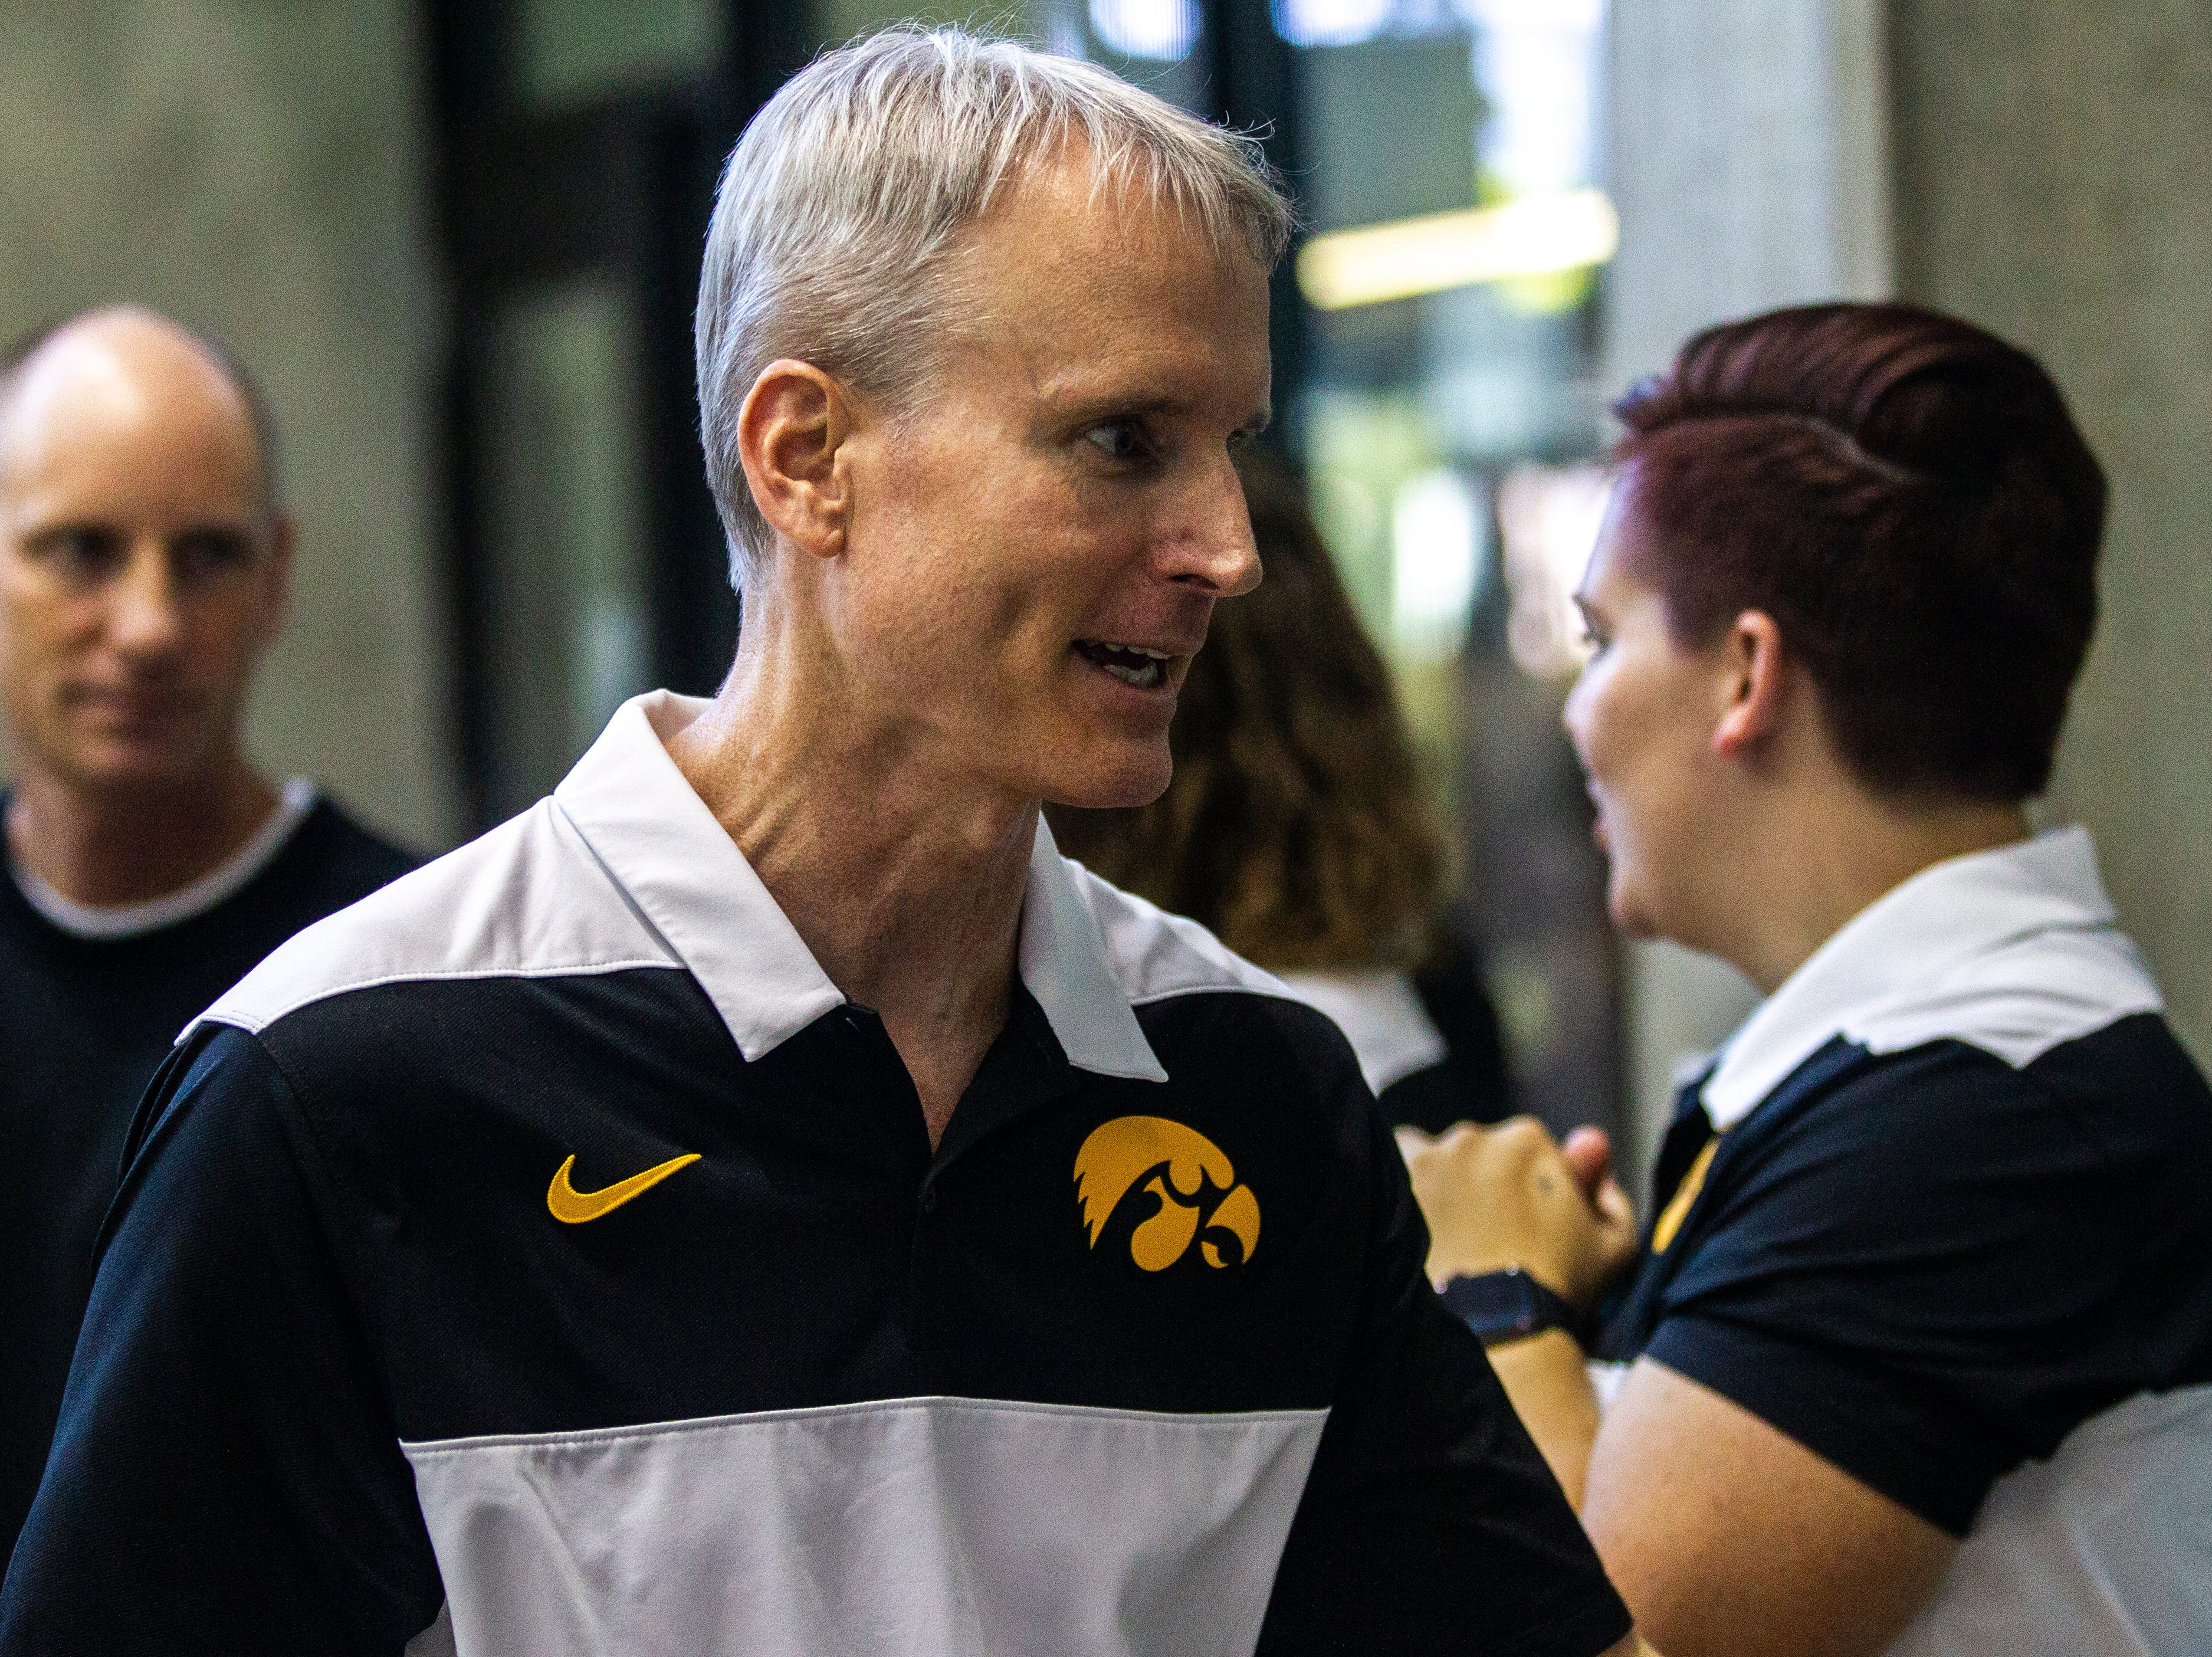 Iowa head coach Marc Long is seen during a NCAA Big Ten Conference swimming meet on Saturday, Jan. 19, 2019, at the Campus Recreation and Wellness Center in Iowa City, Iowa.